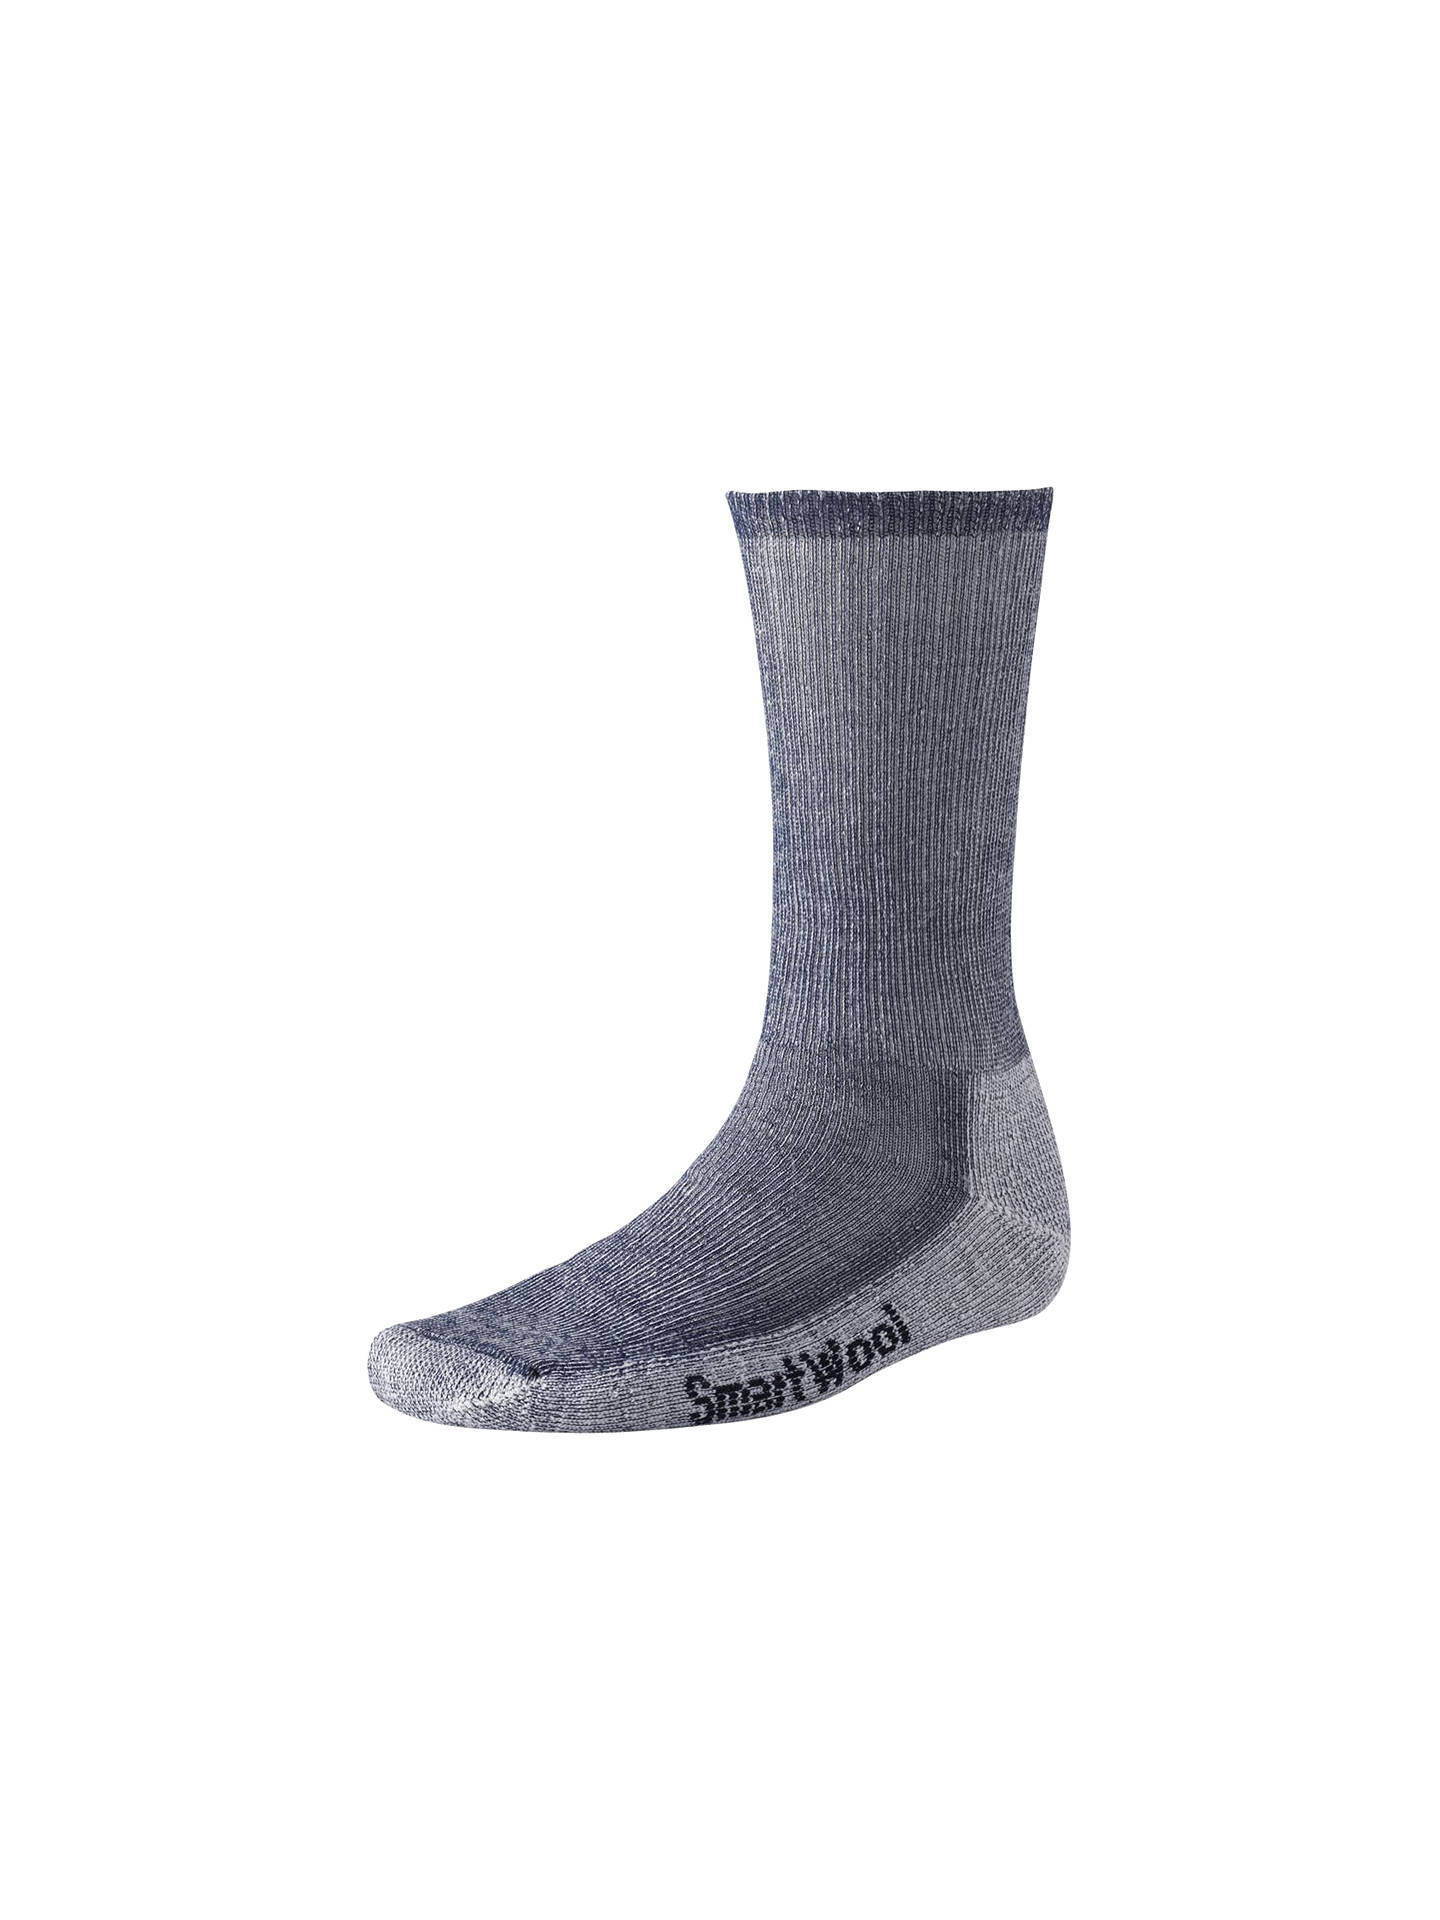 ae82413a0 SmartWool Hiking Medium Crew Socks, Navy